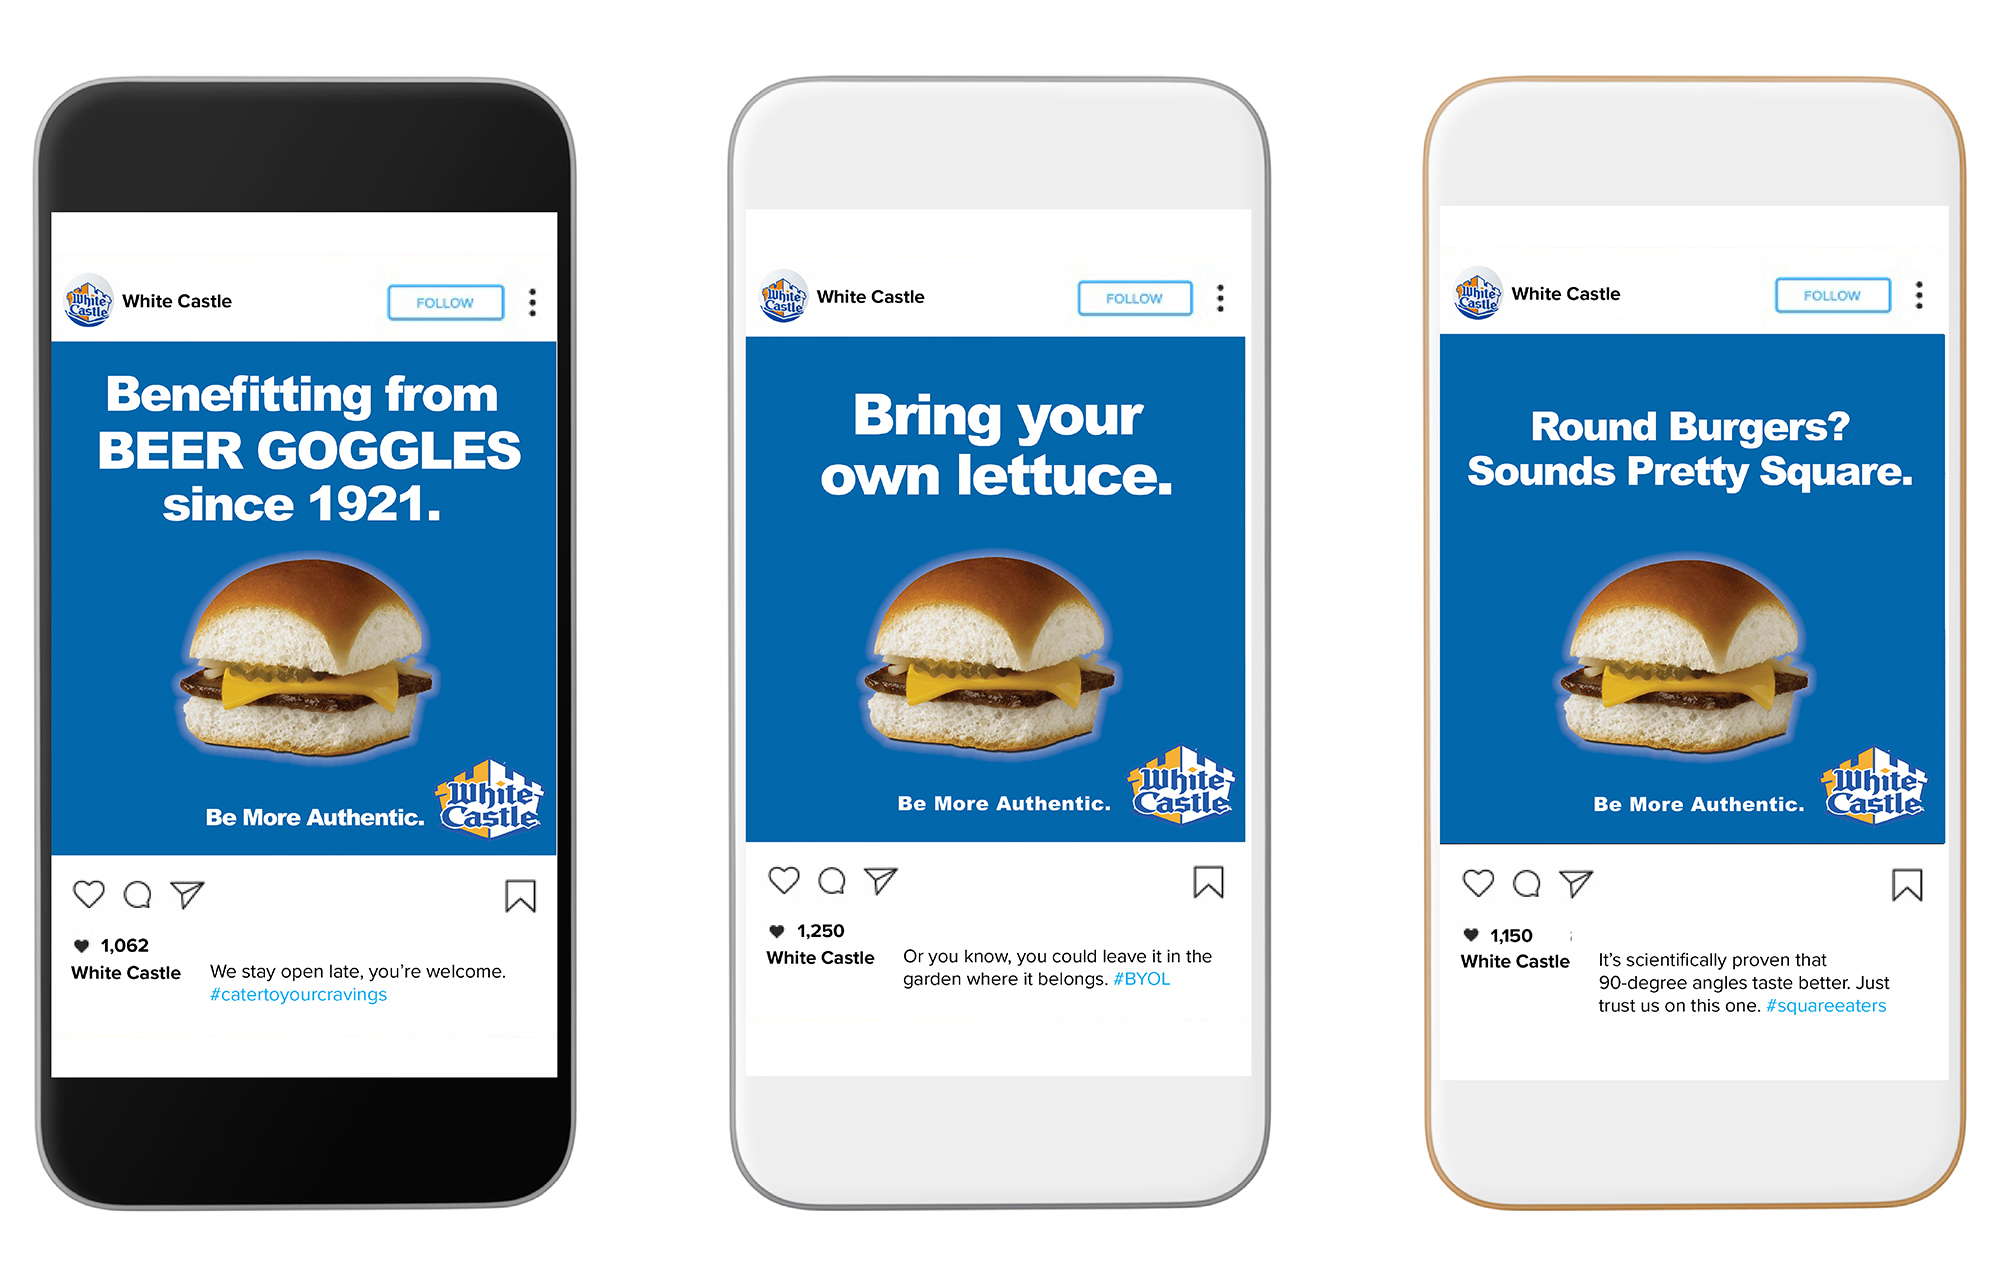 """Three iPhones display White Castle Instagram advertisements. The first depicts a White Castle hamburger with the text: """"Benefitting from BEER GOGGLES since 1921. Be More Authentic."""" The second depicts a White Castle hamburger with the text: """"Bring your own lettuce. Be More Authentic."""" The third depicts a White Castle hamburger with the text: """"Round Burgers? Sounds Pretty Square."""""""